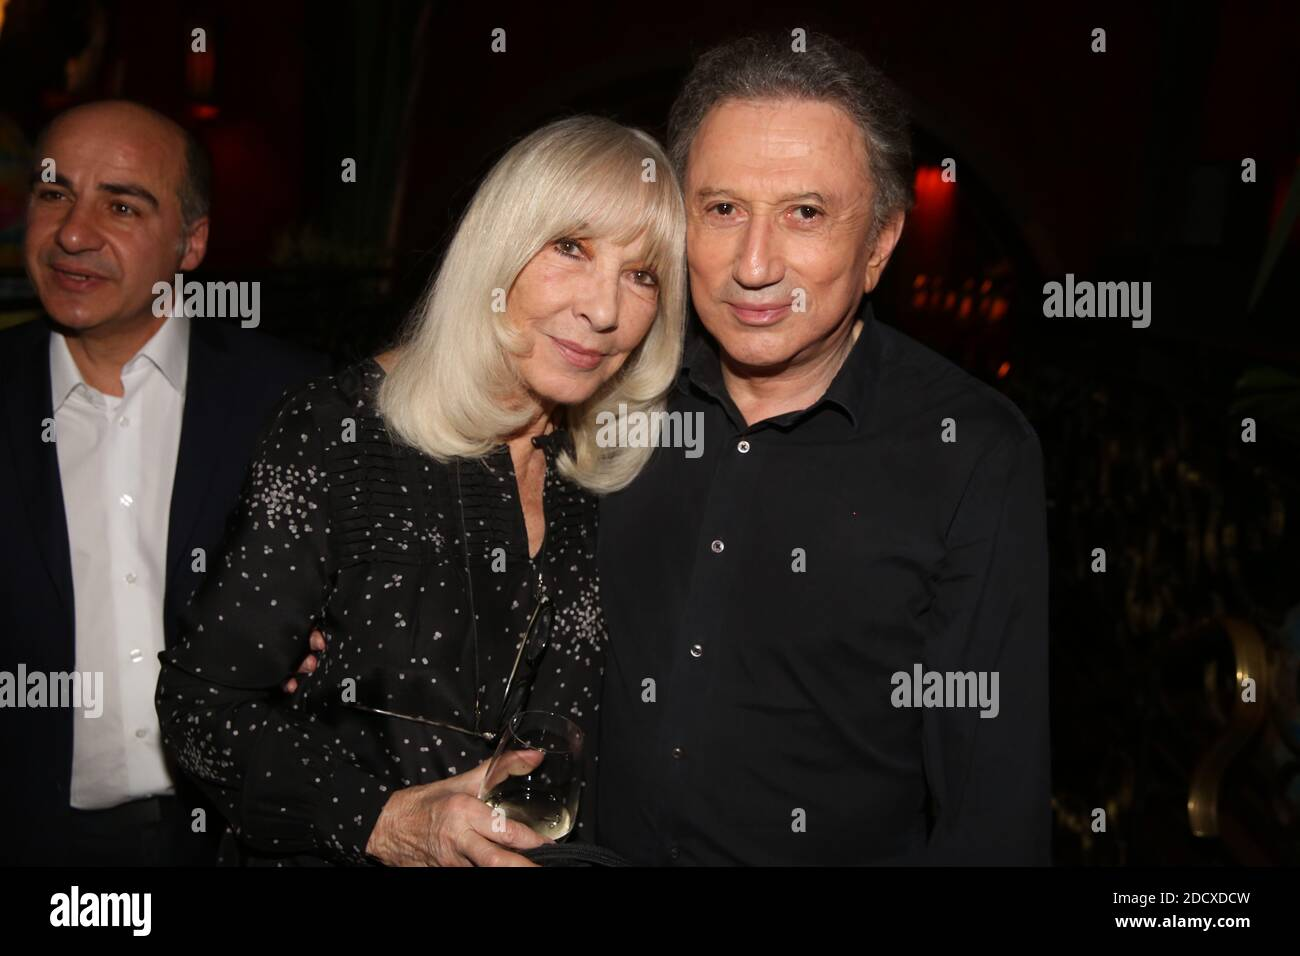 Dany Saval High Resolution Stock Photography And Images Alamy